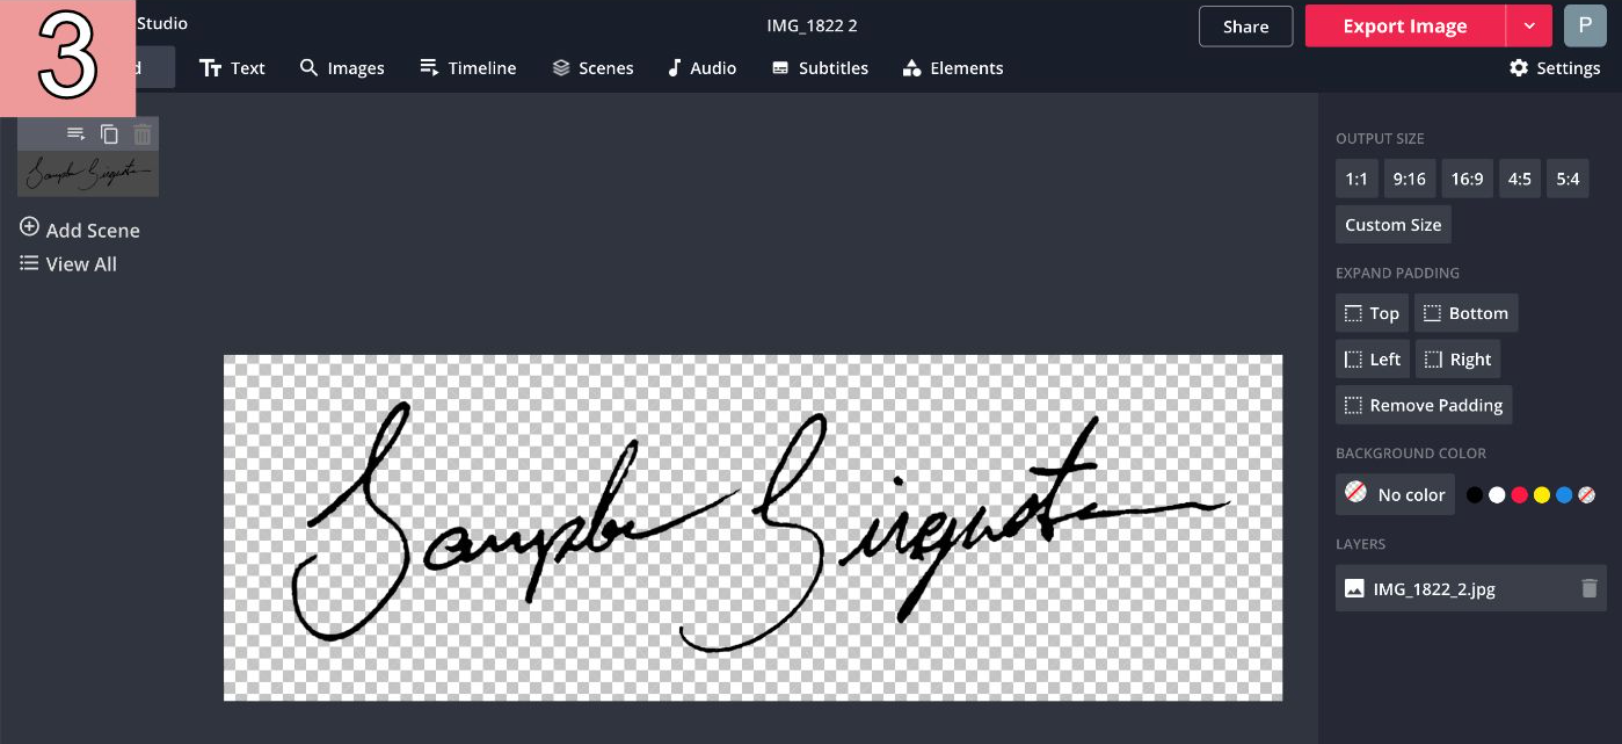 A screenshot of an erased signature image with high contrast in the Kapwing Studio.